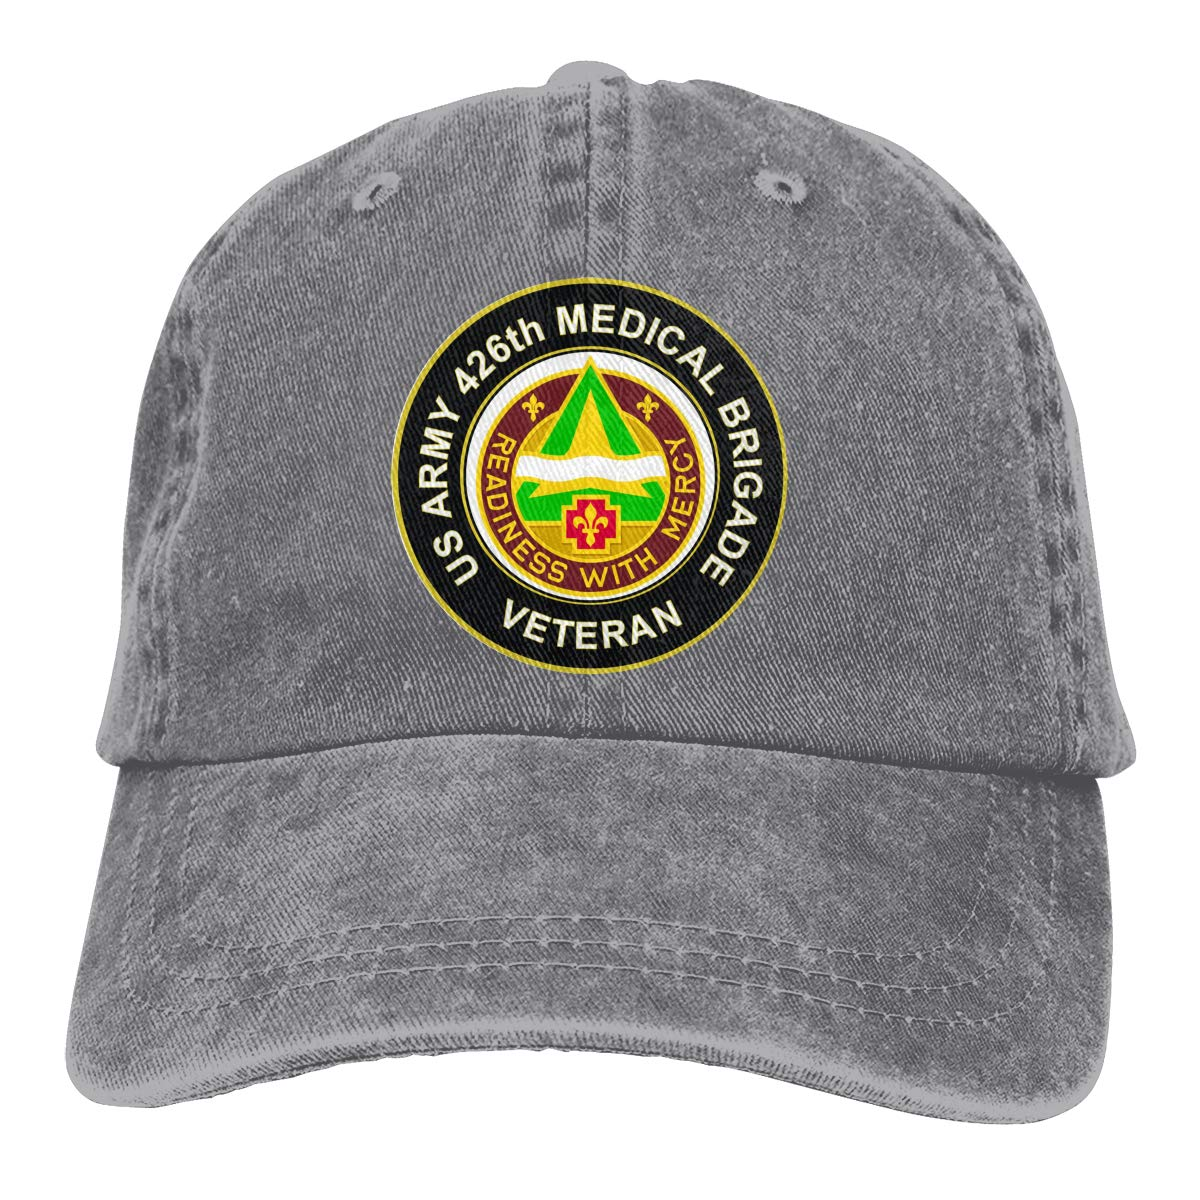 U.S Army 426th Medical Brigade Unit Crest Veteran Summer Cool Heat Shield Unisex Adult Cowboy Hat